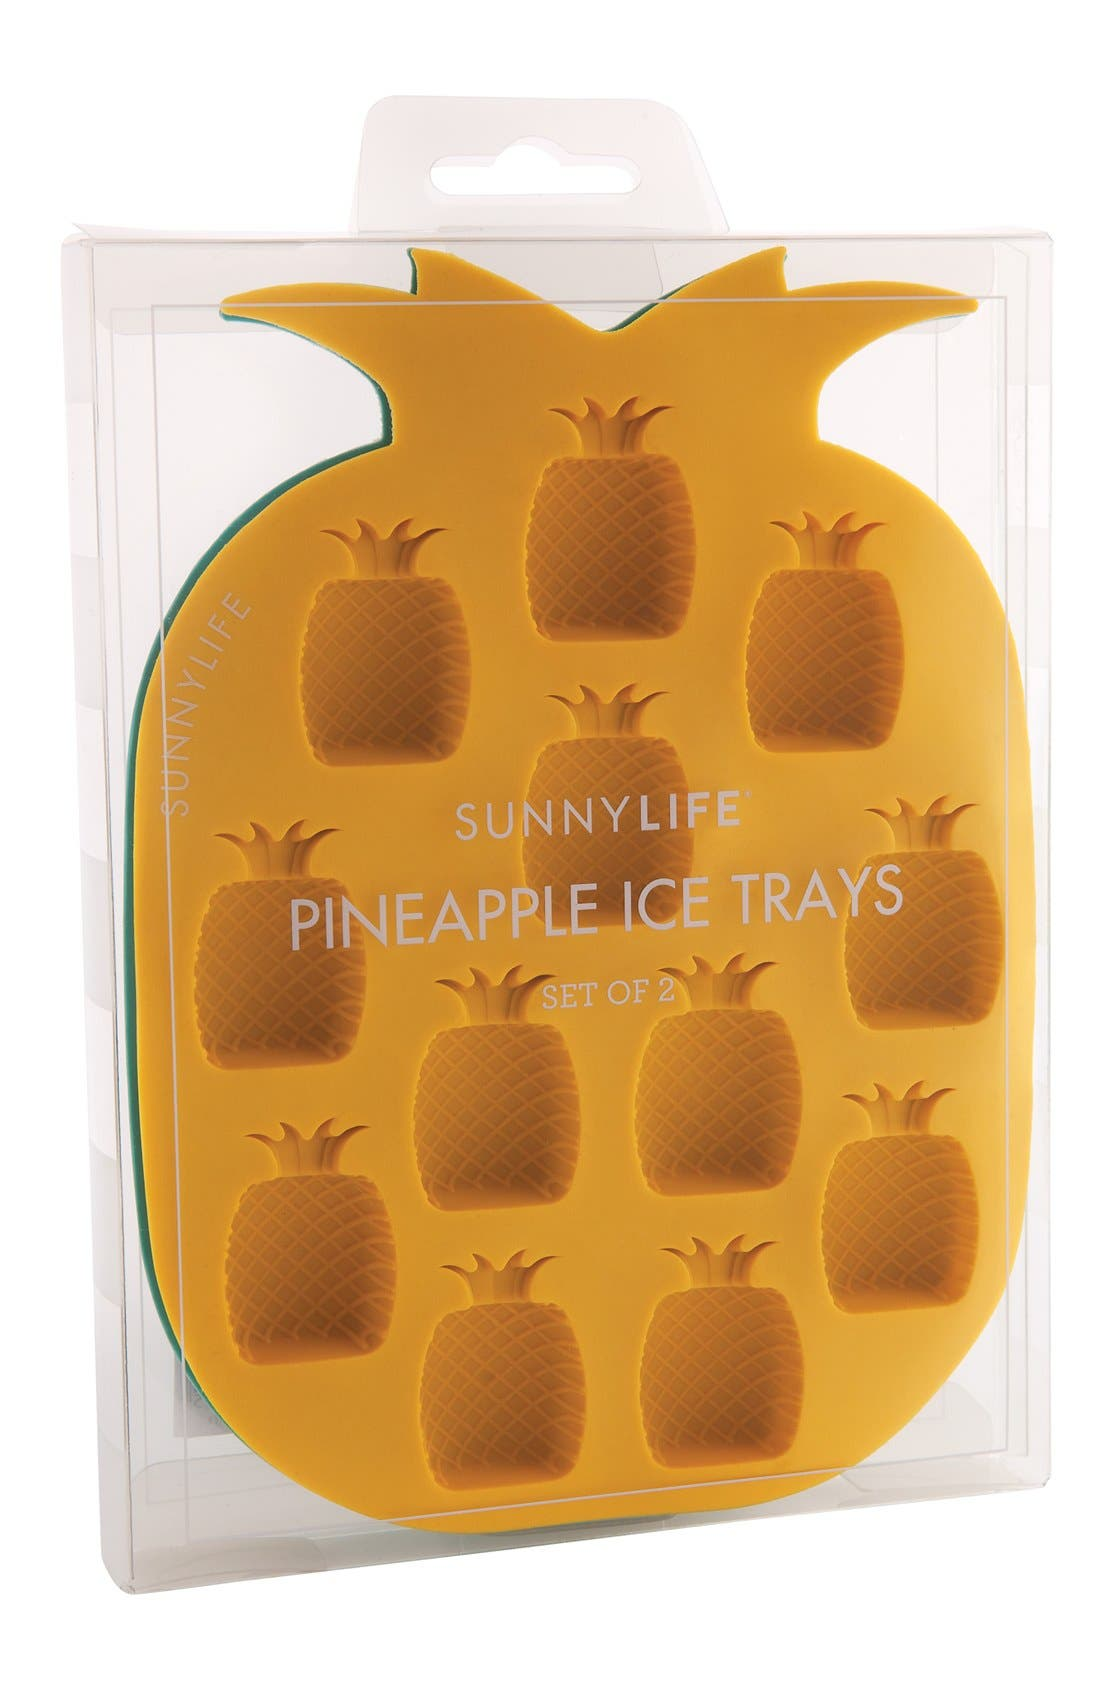 SUNNYLIFE, Pineapple Ice Cube Tray, Alternate thumbnail 2, color, 440